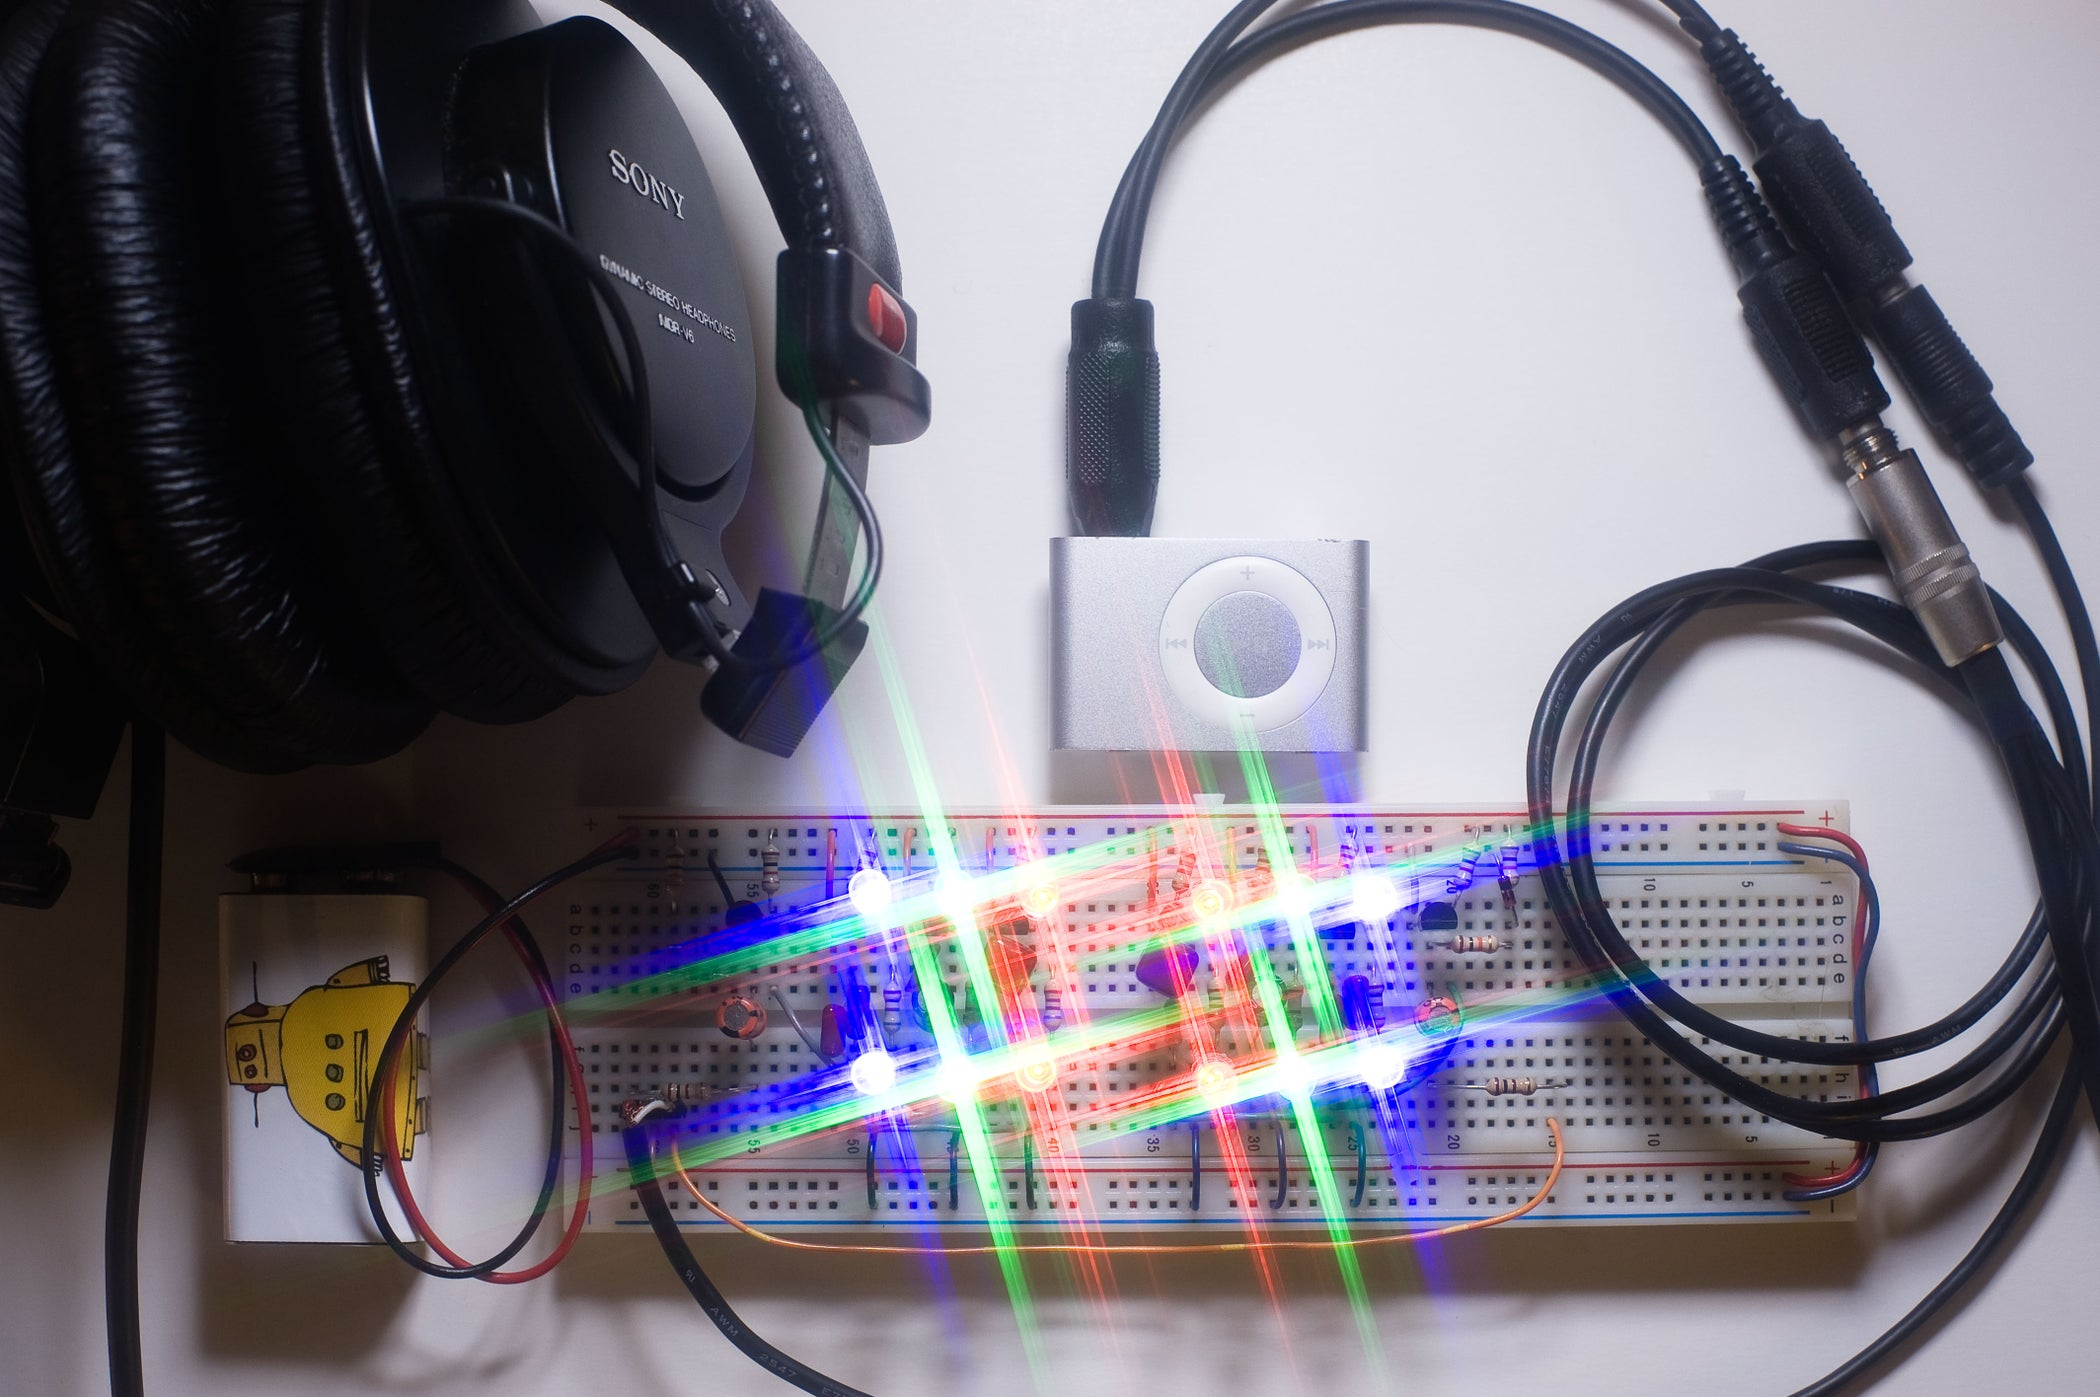 Led Color Organ Triple Deluxe 4 Steps With Pictures Other Circuit Skills Diy Videos By Collin